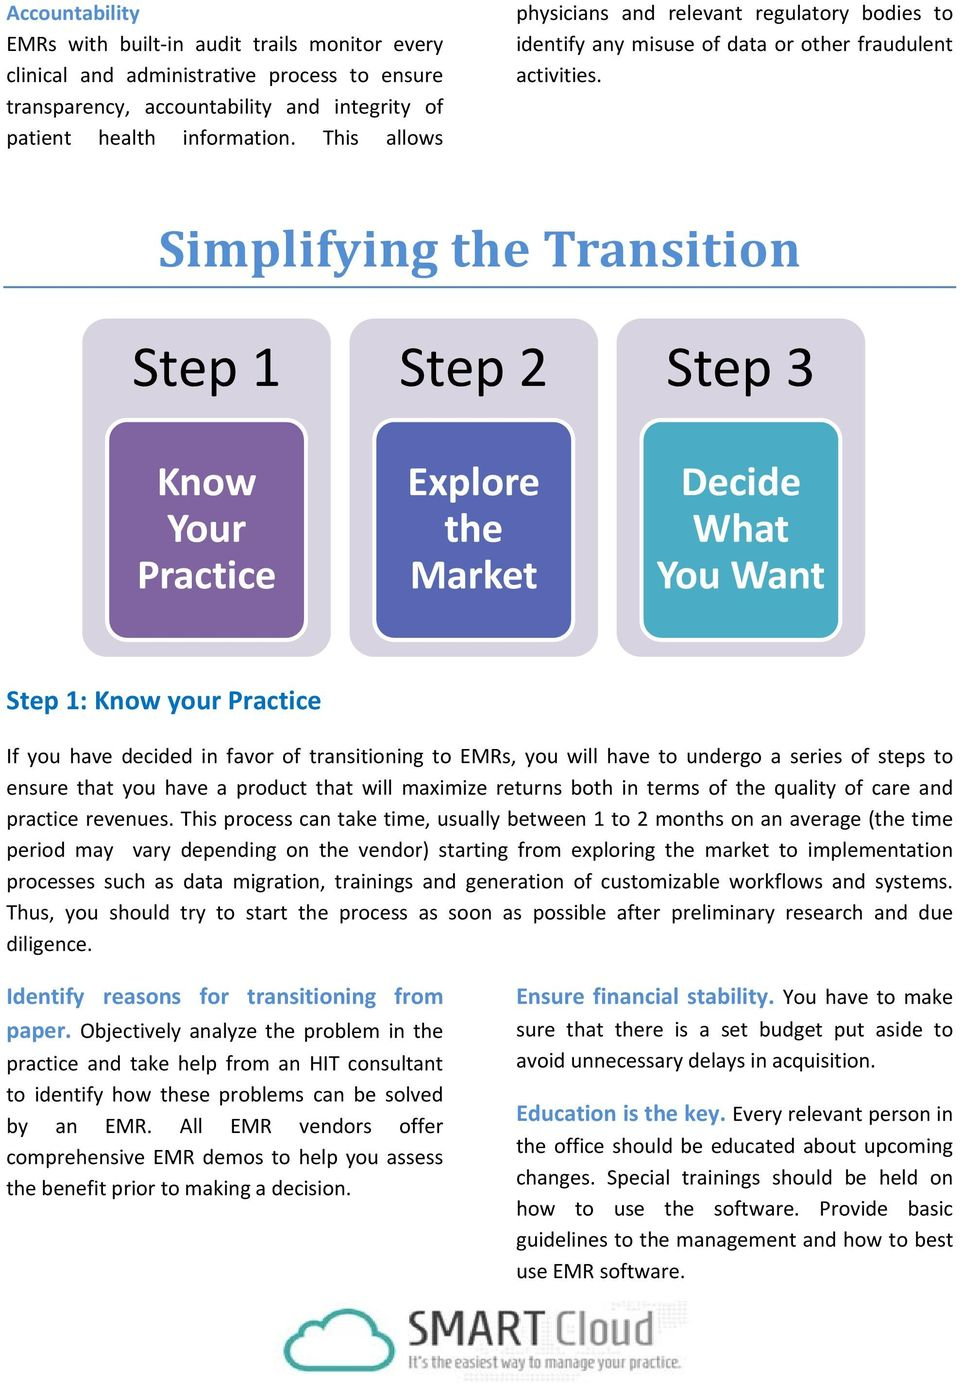 Simplifying the Transition Step 1 Know Your Practice Step 2 Explore the Market Step 3 Decide What You Want Step 1: Know your Practice If you have decided in favor of transitioning to EMRs, you will